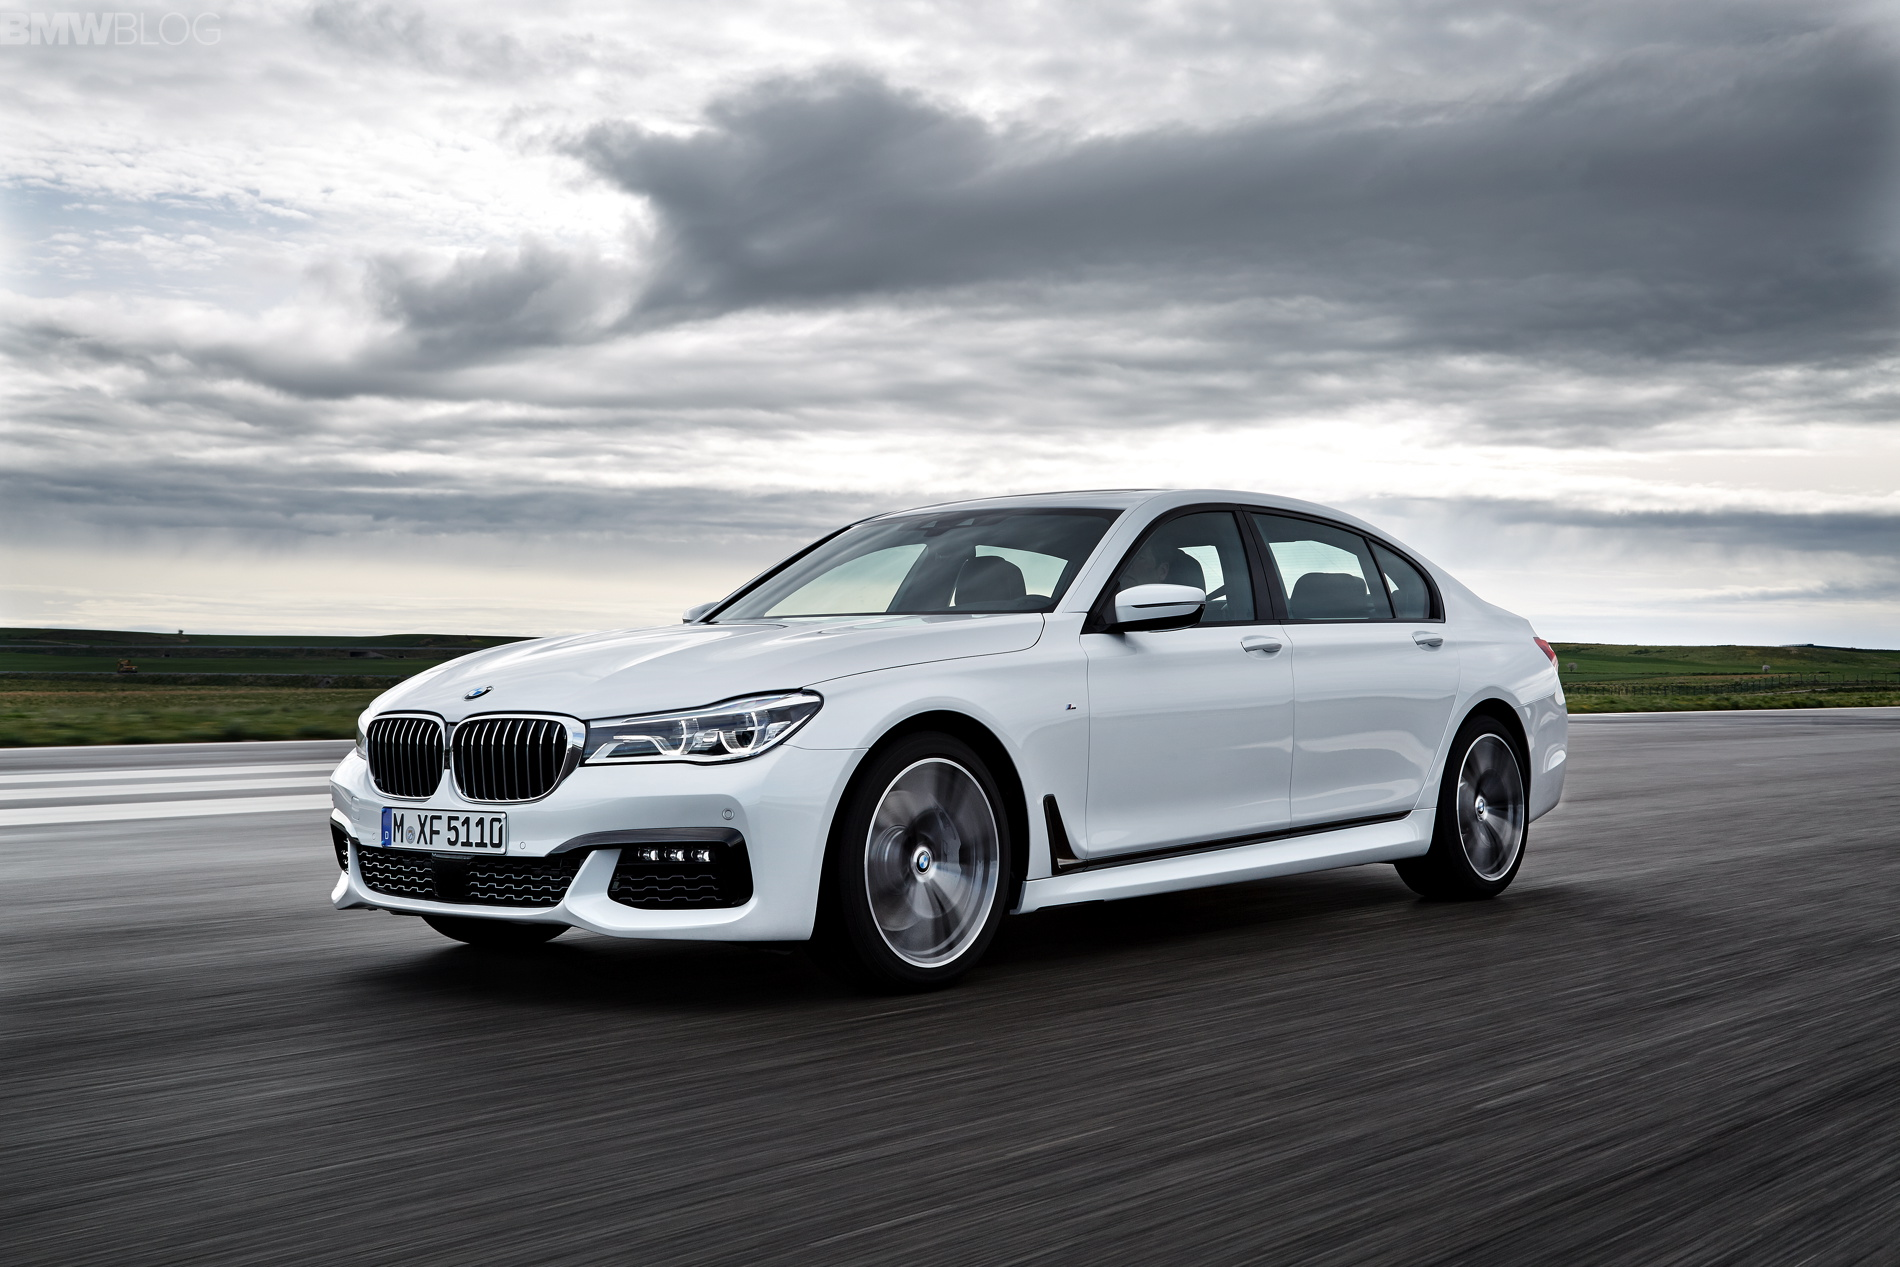 BMW 750d Price For Quad Turbo Diesel Starts At 107700 Euros